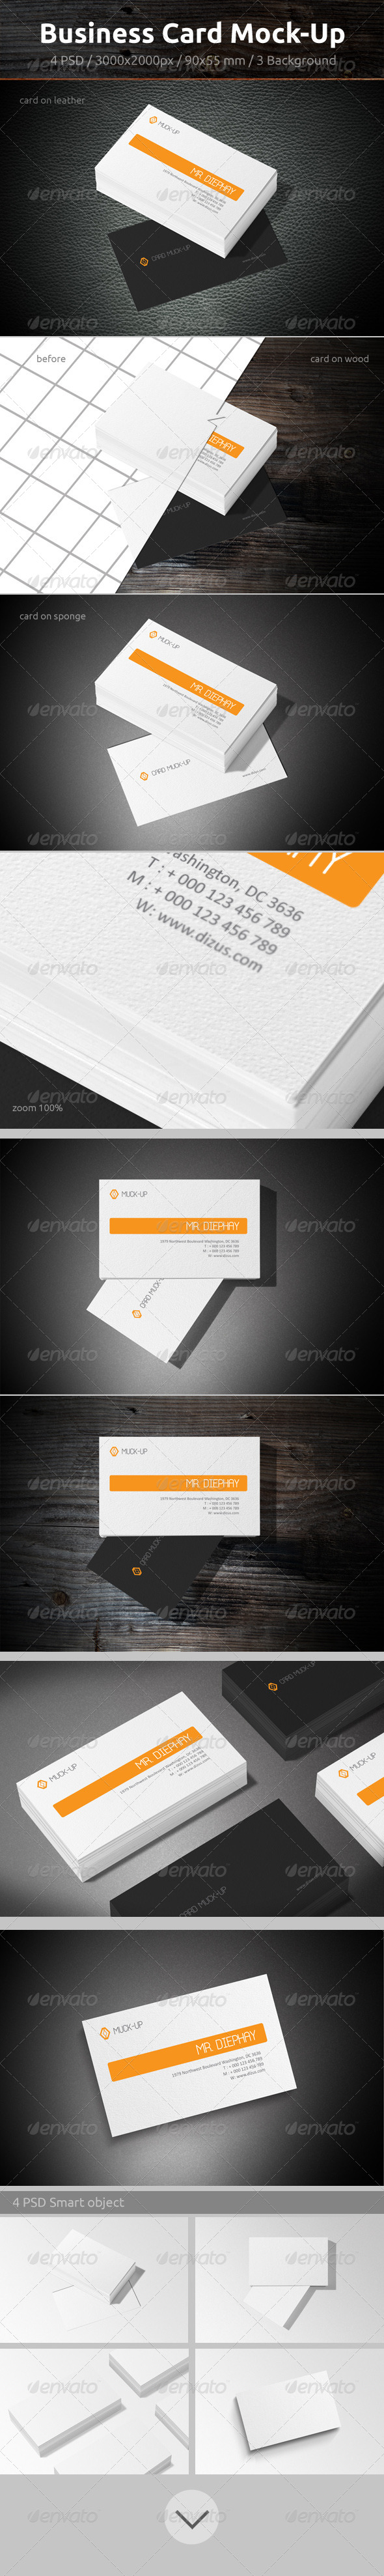 GraphicRiver Business Card Mock-Up 6799048